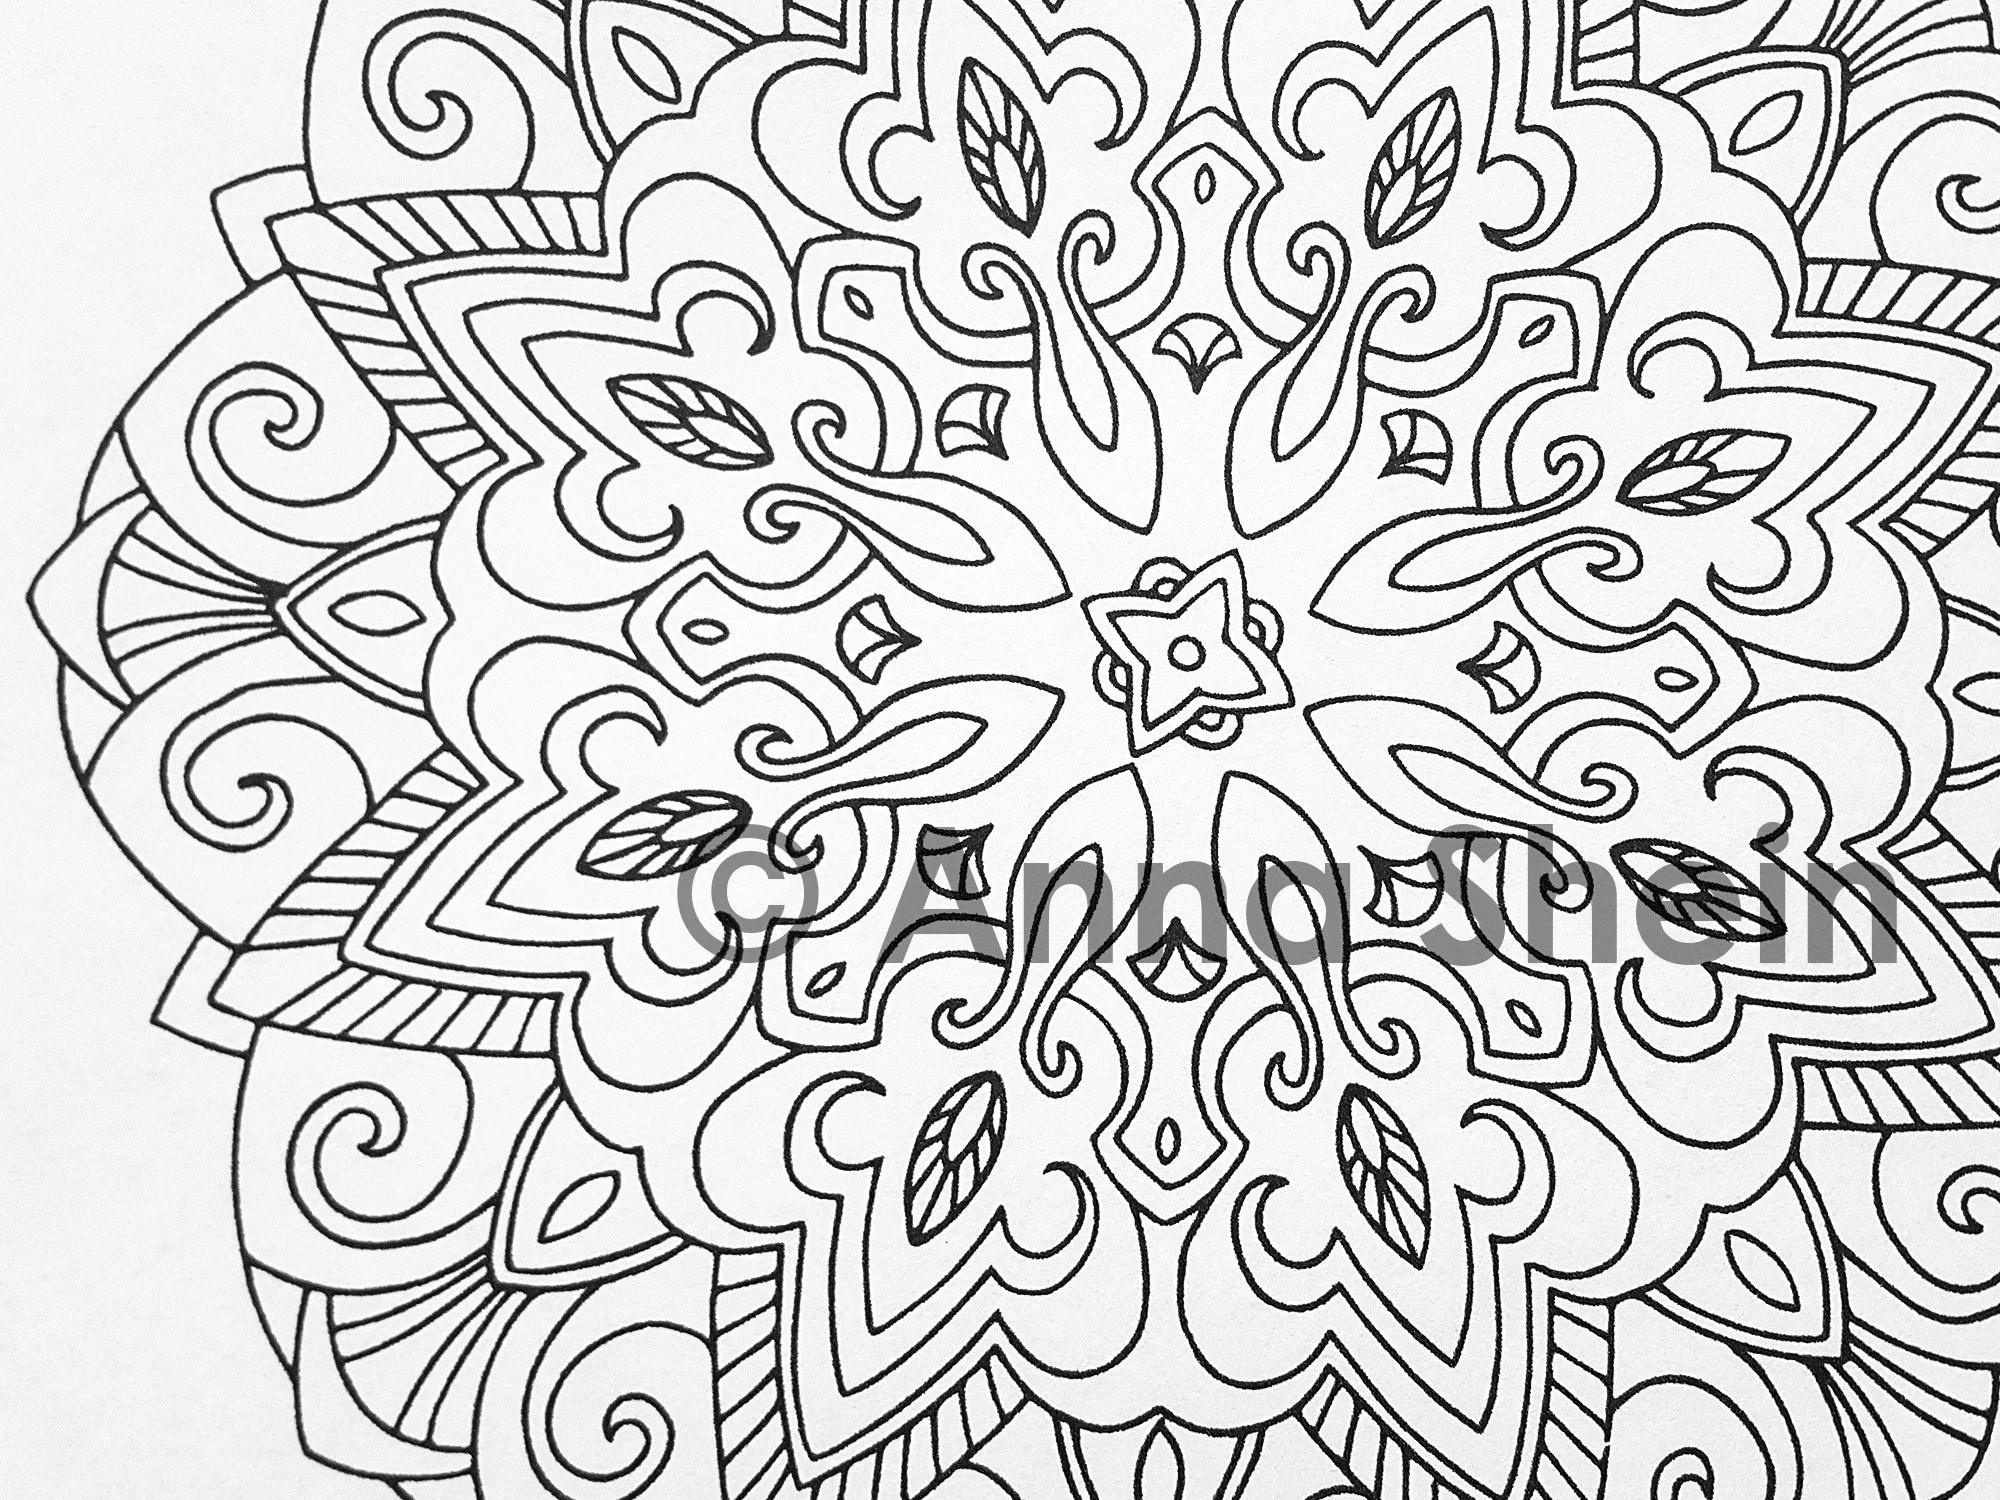 Mandala Coloring Pages Printable Coloring Pages PDF Coloring Etsy